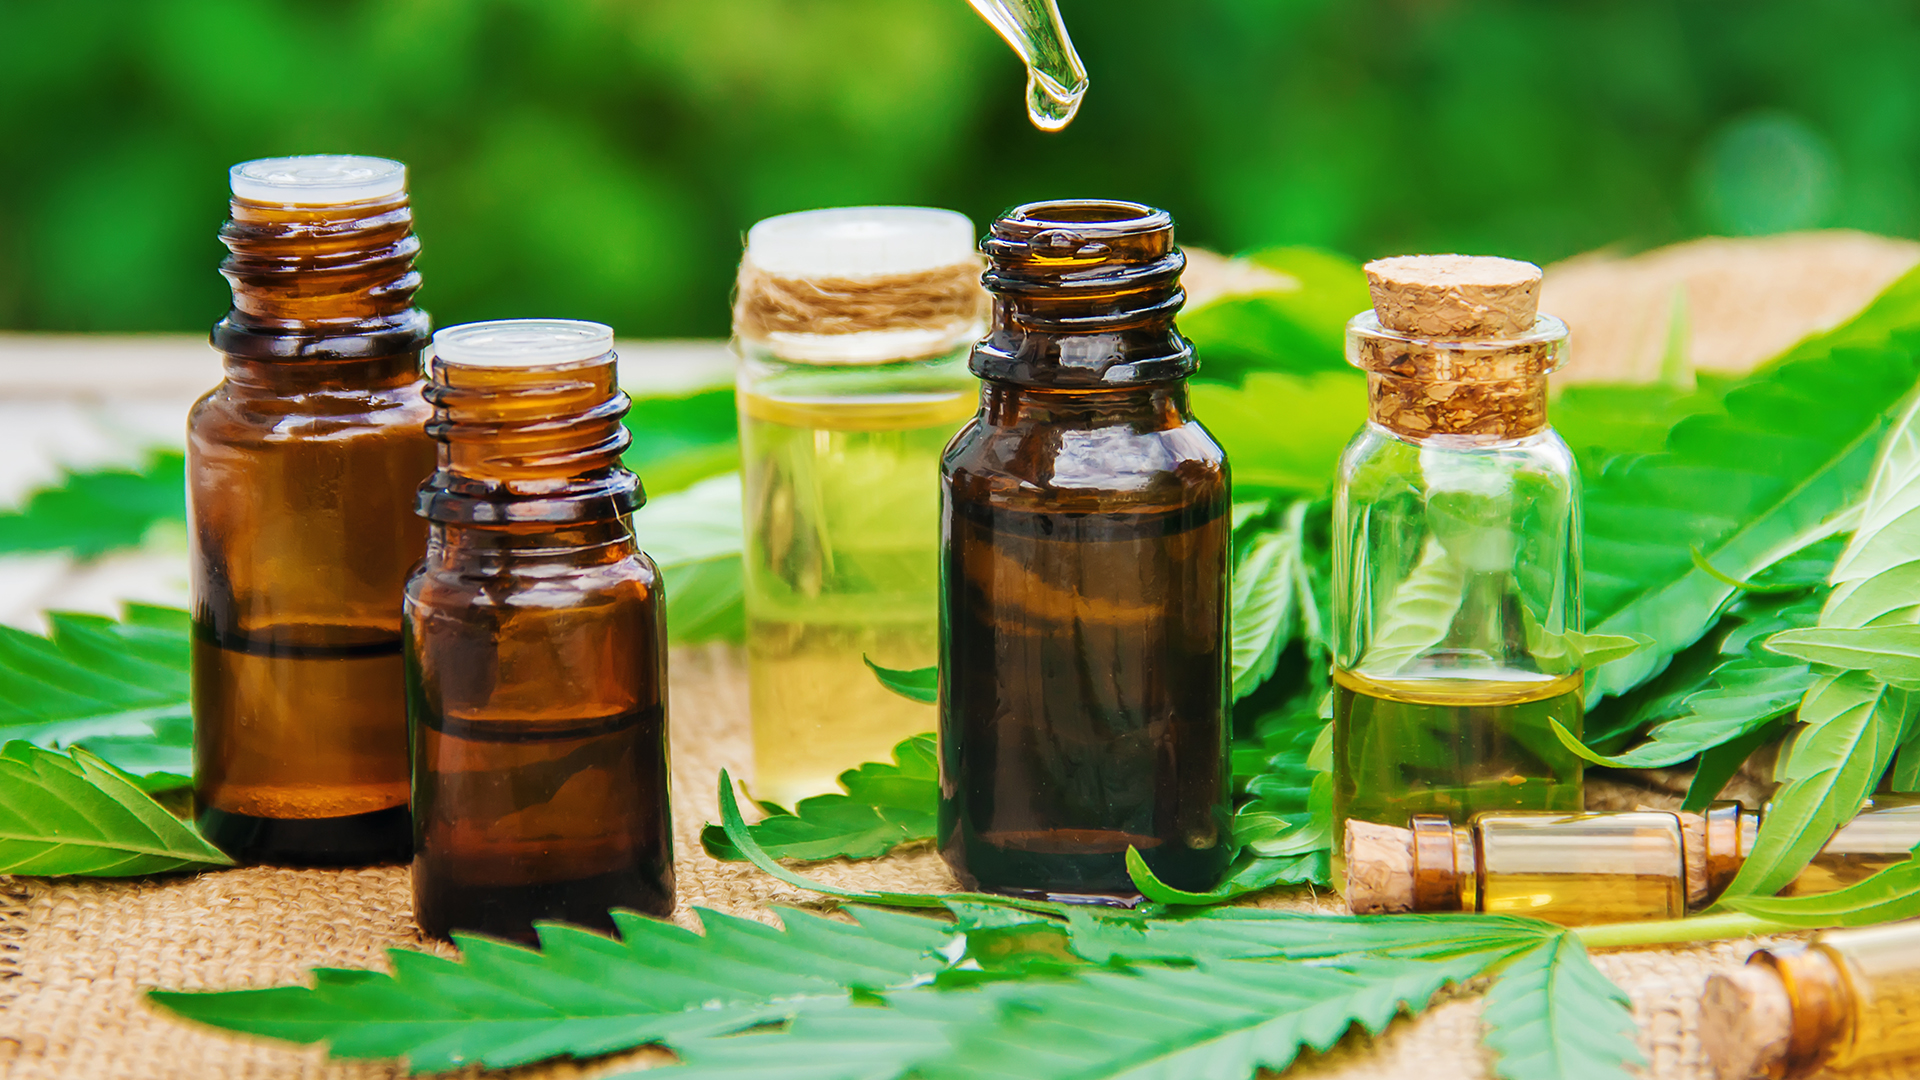 CBD Shop significant and relevant within the market in Germany